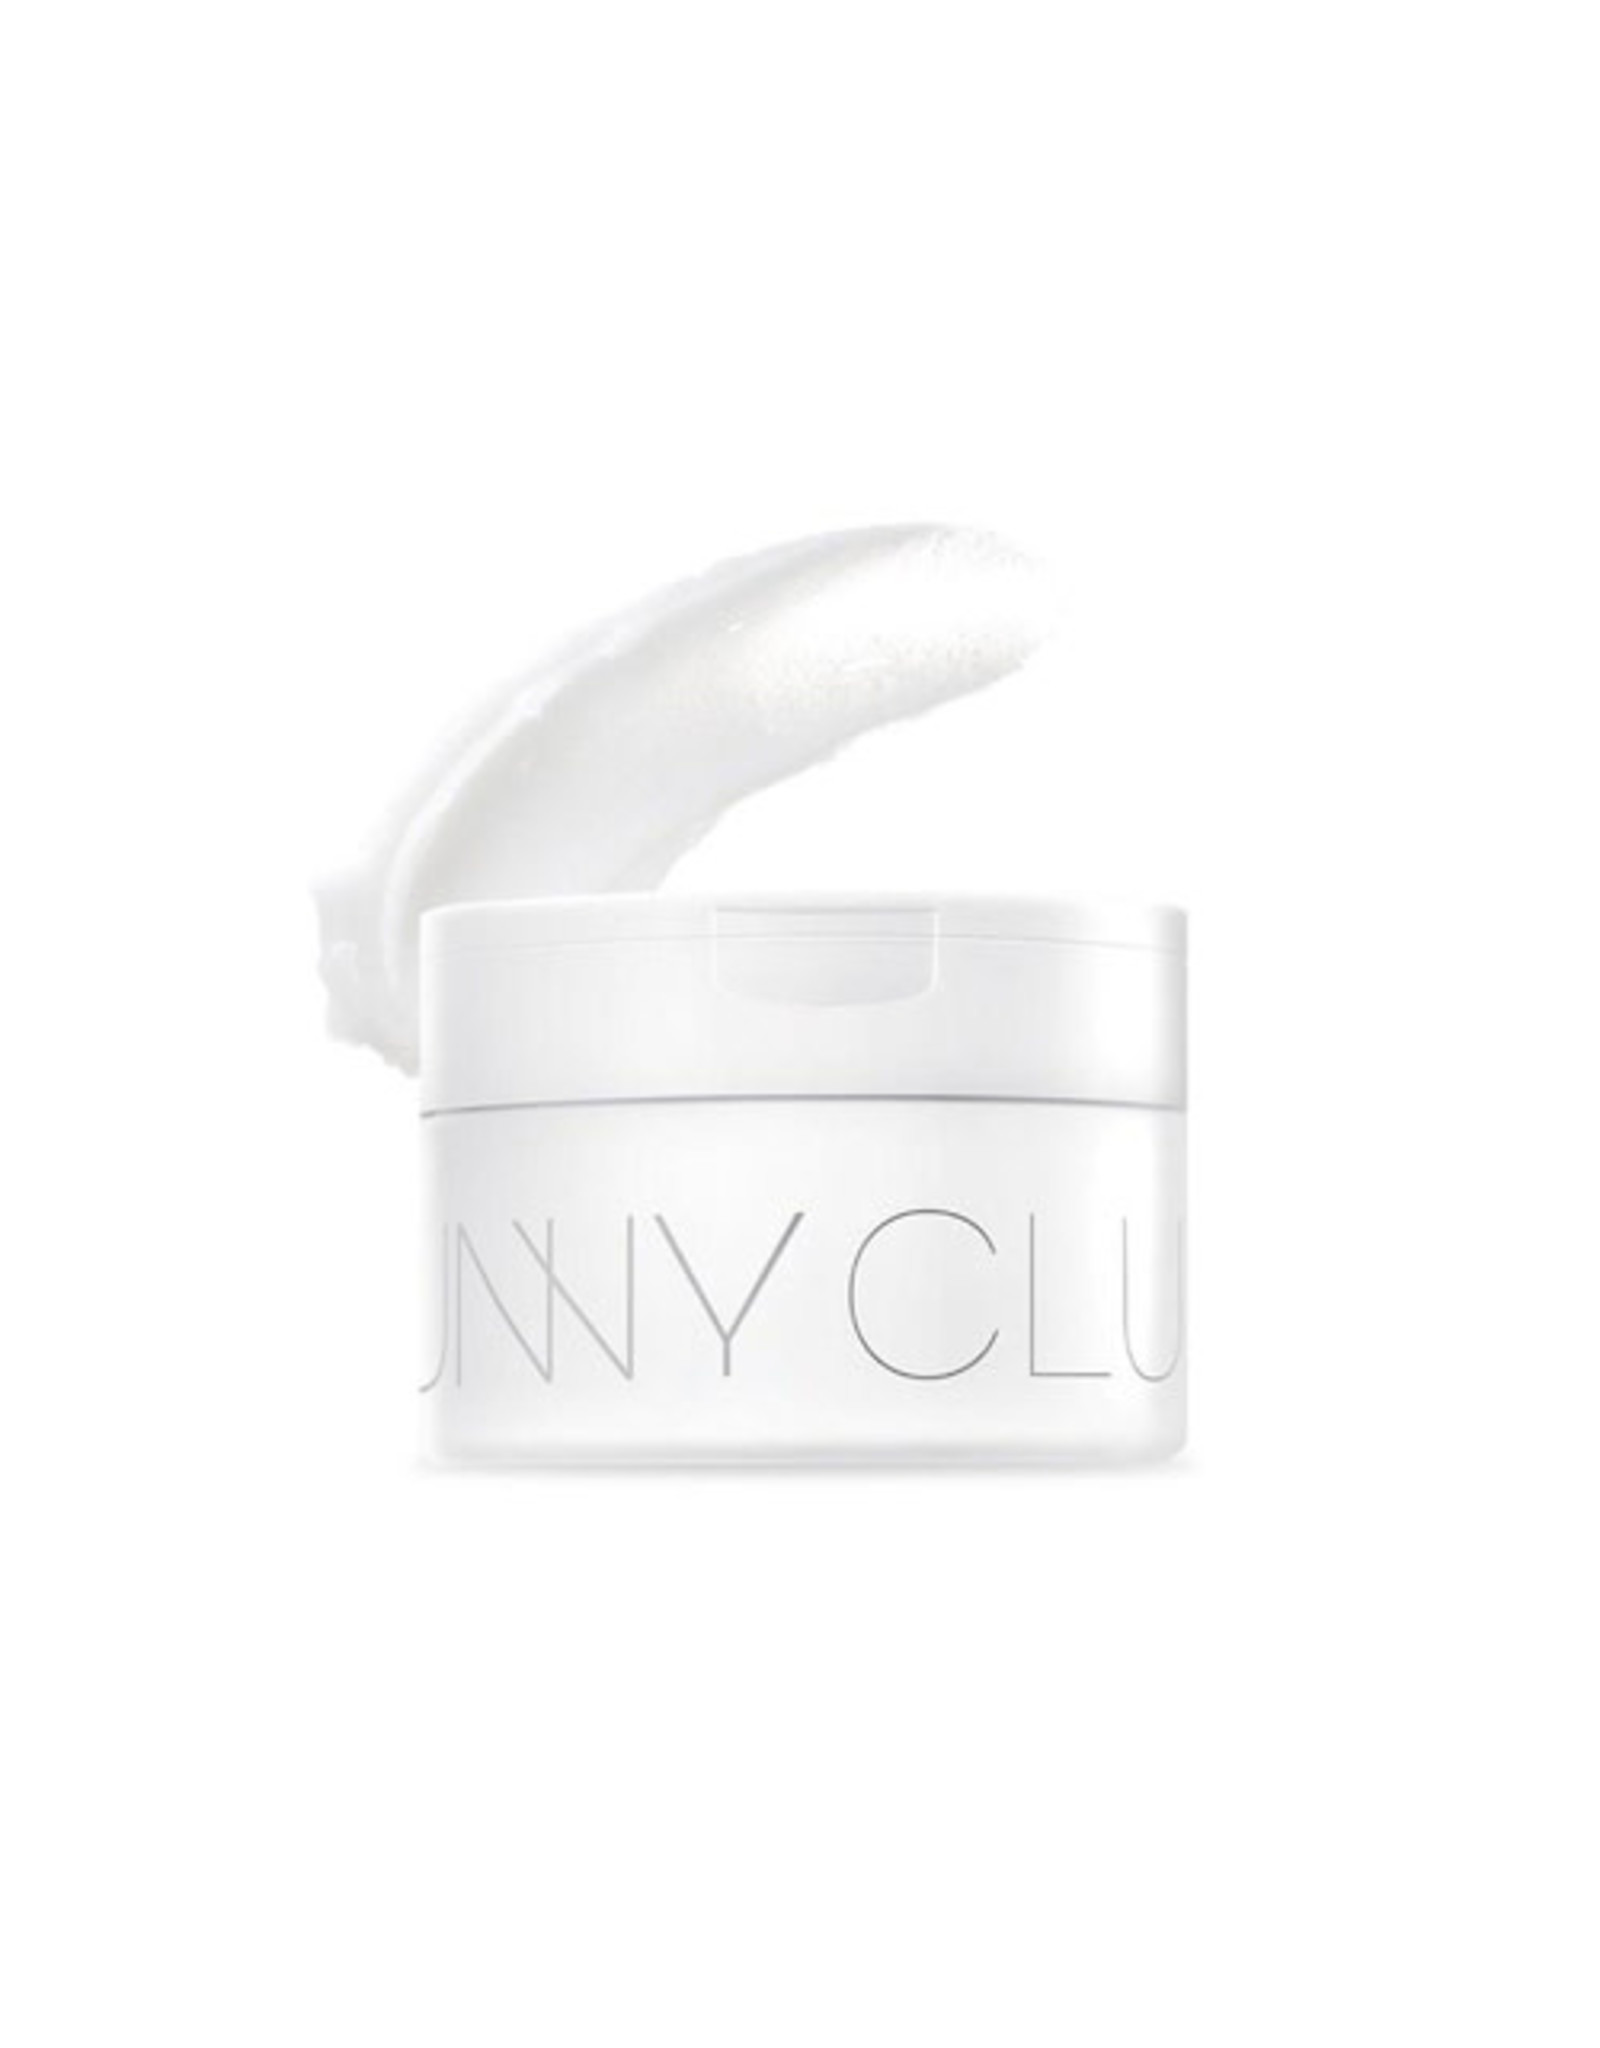 Unny Club Gentle Cleansing Balm